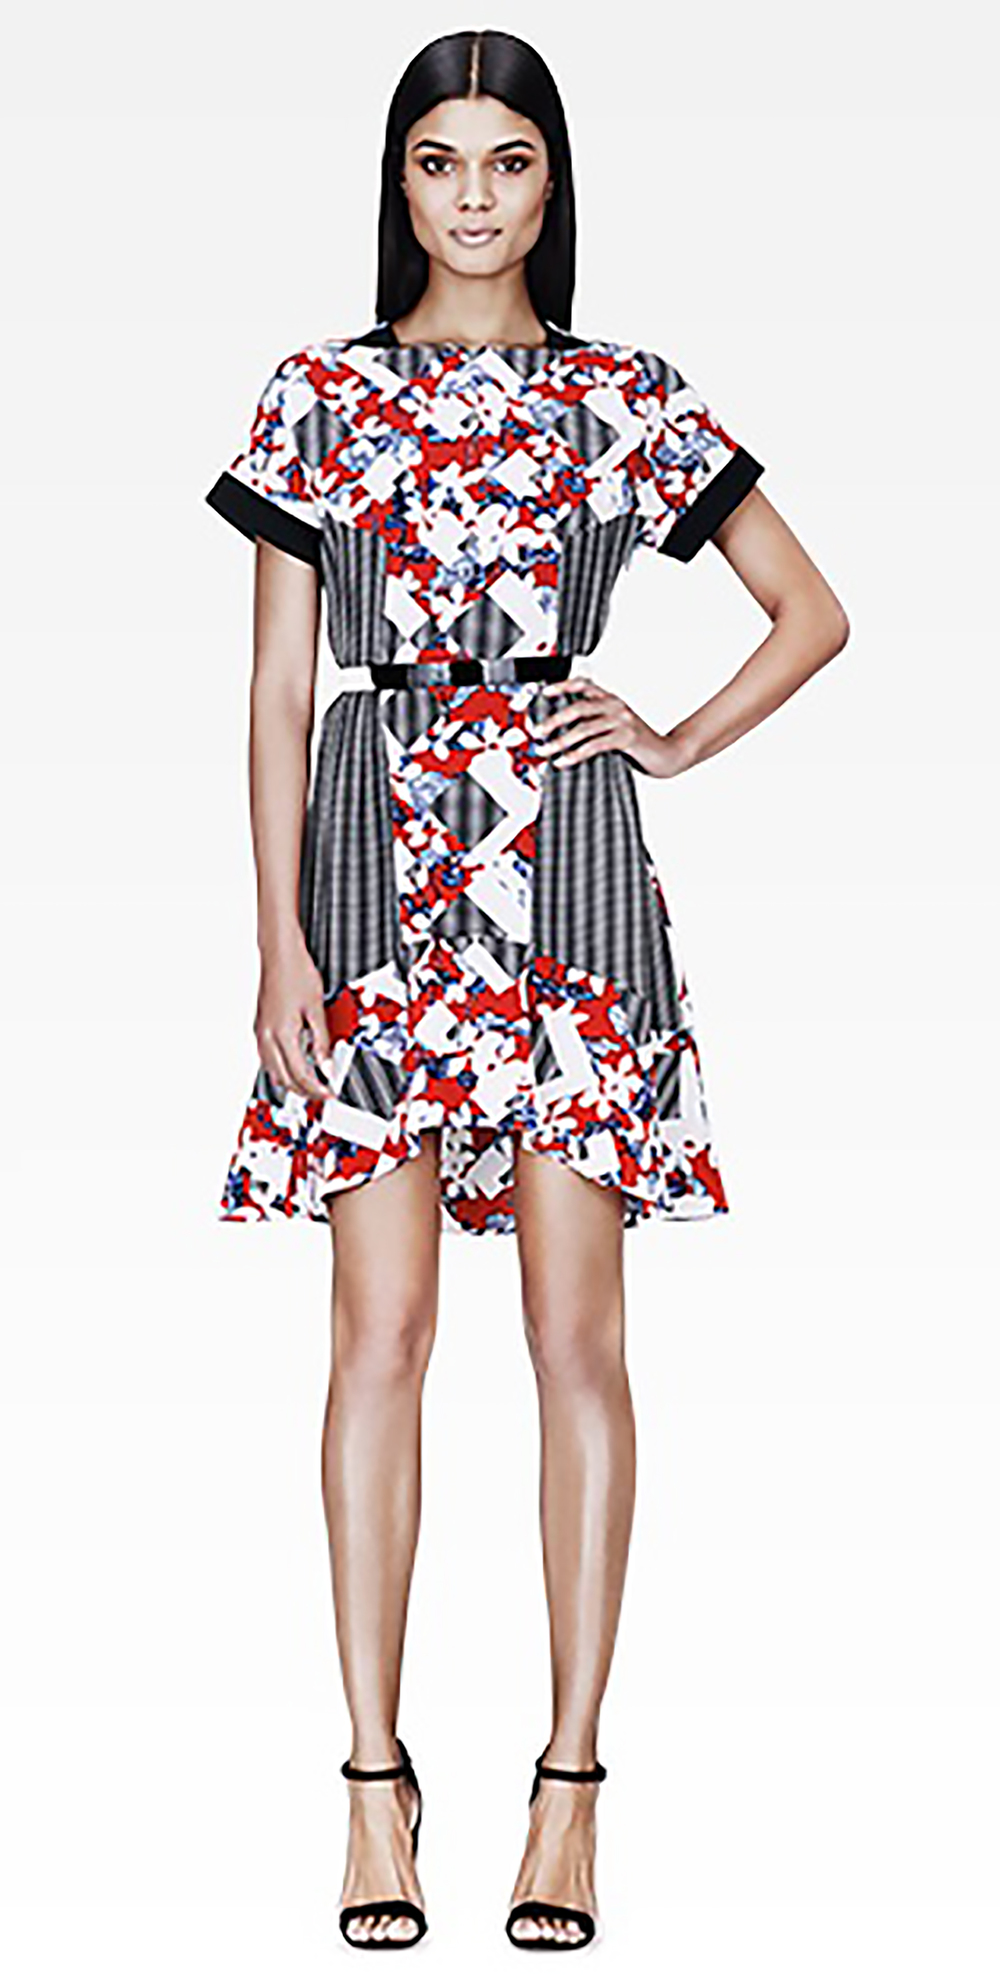 target.com peter pilotto belted dress in red floral-check print 1500.jpg